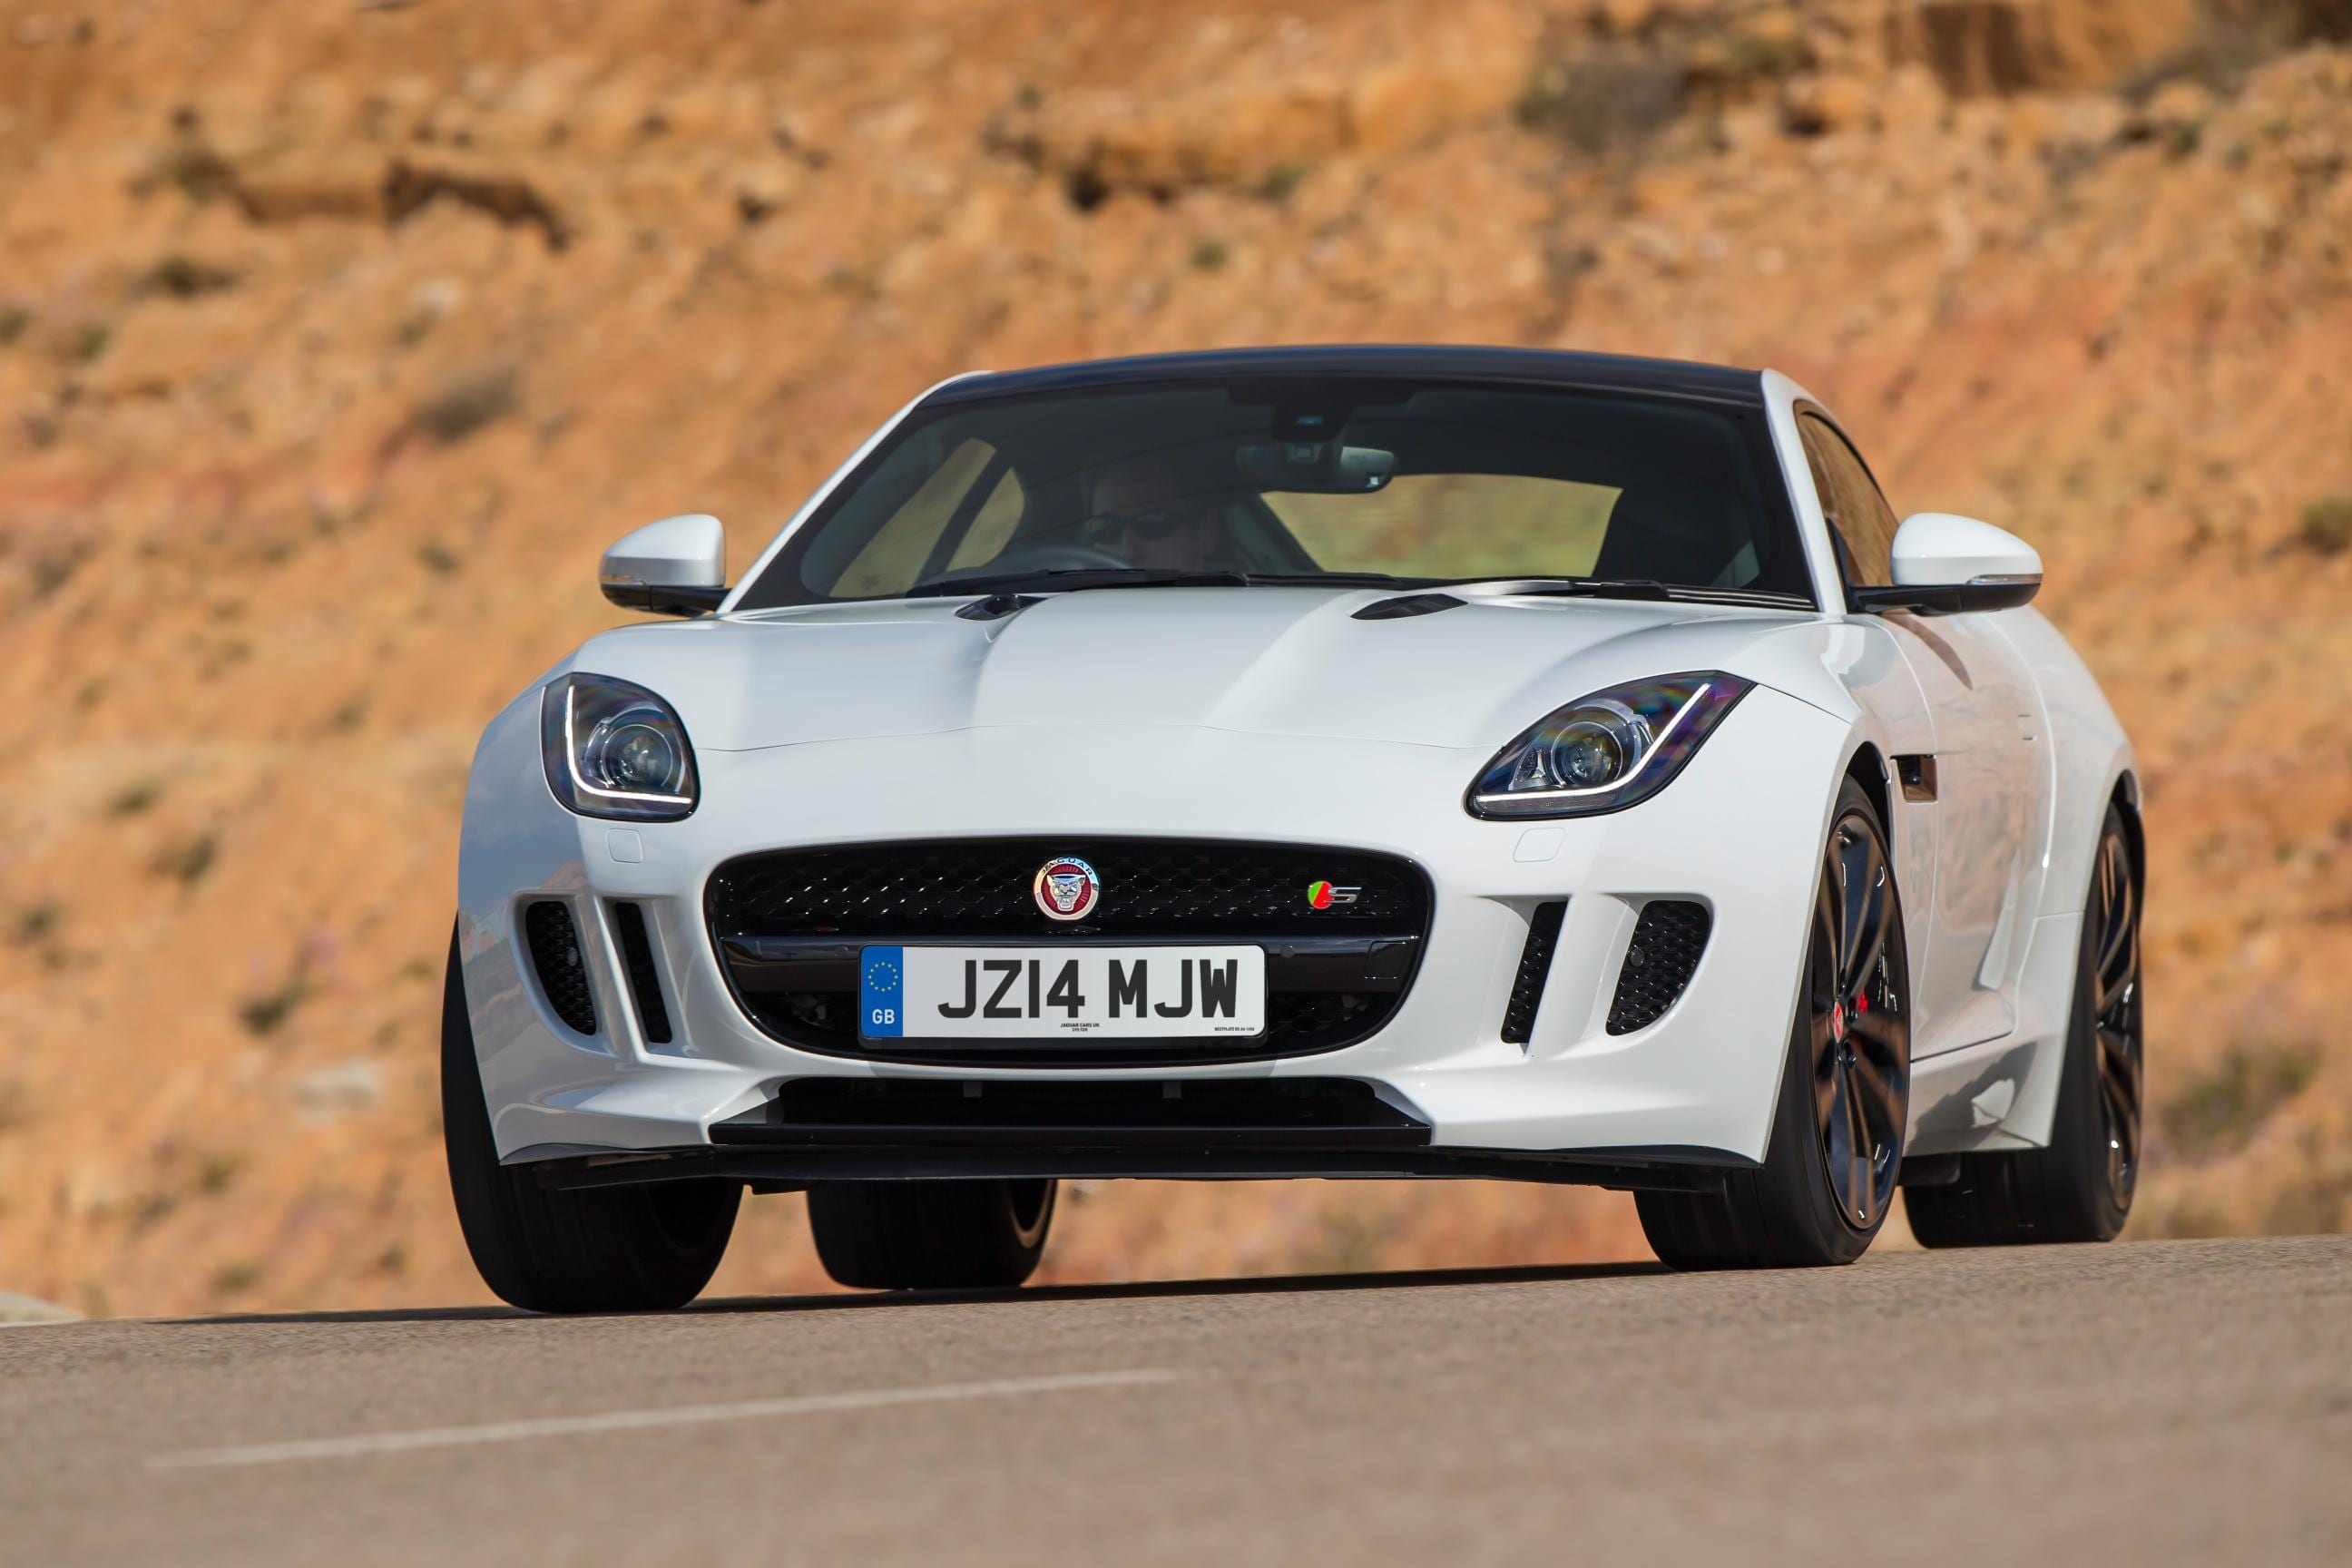 834013_JAG_F-TYPE_V6S_Polaris_White_005